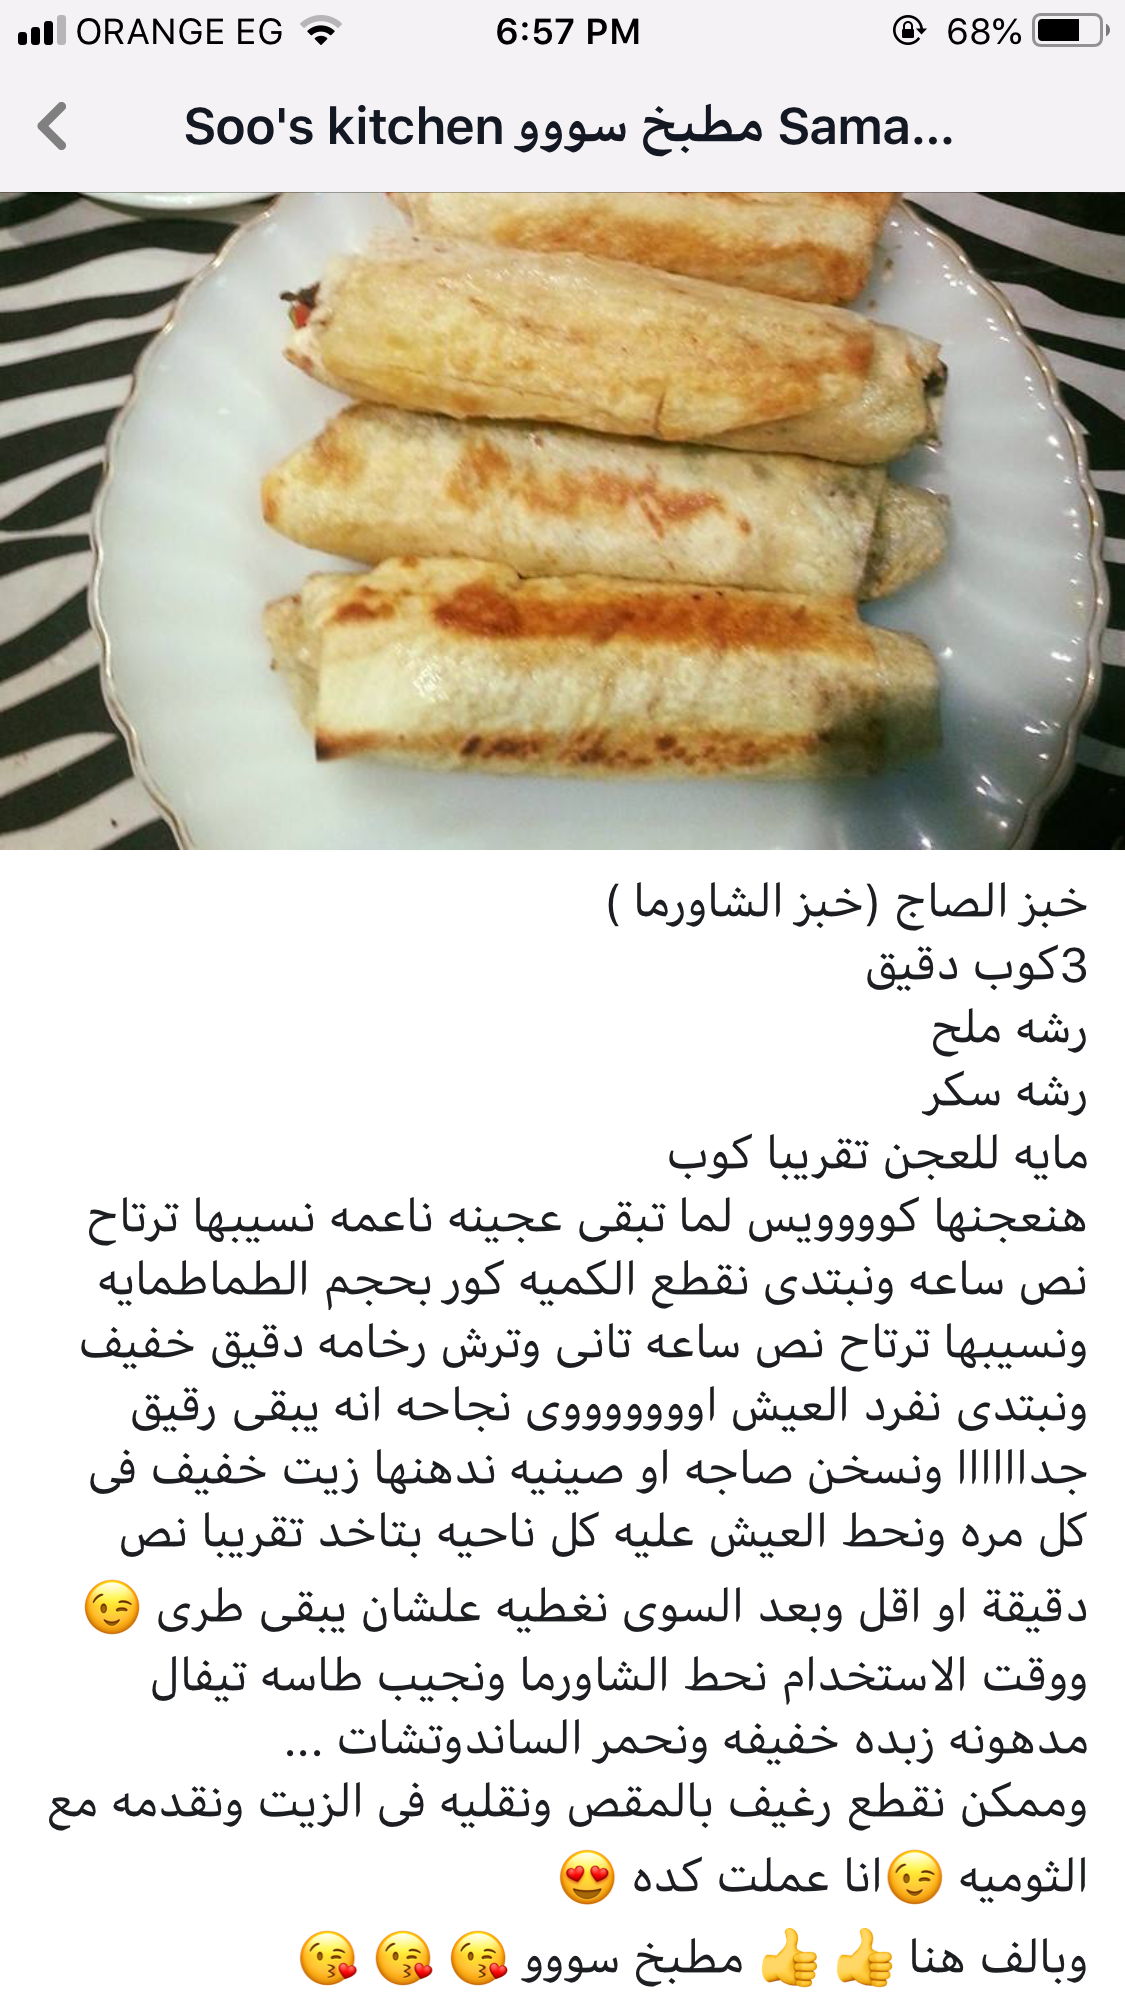 خبز الصاج Savory Dessert Saj Bread Recipe Cooking